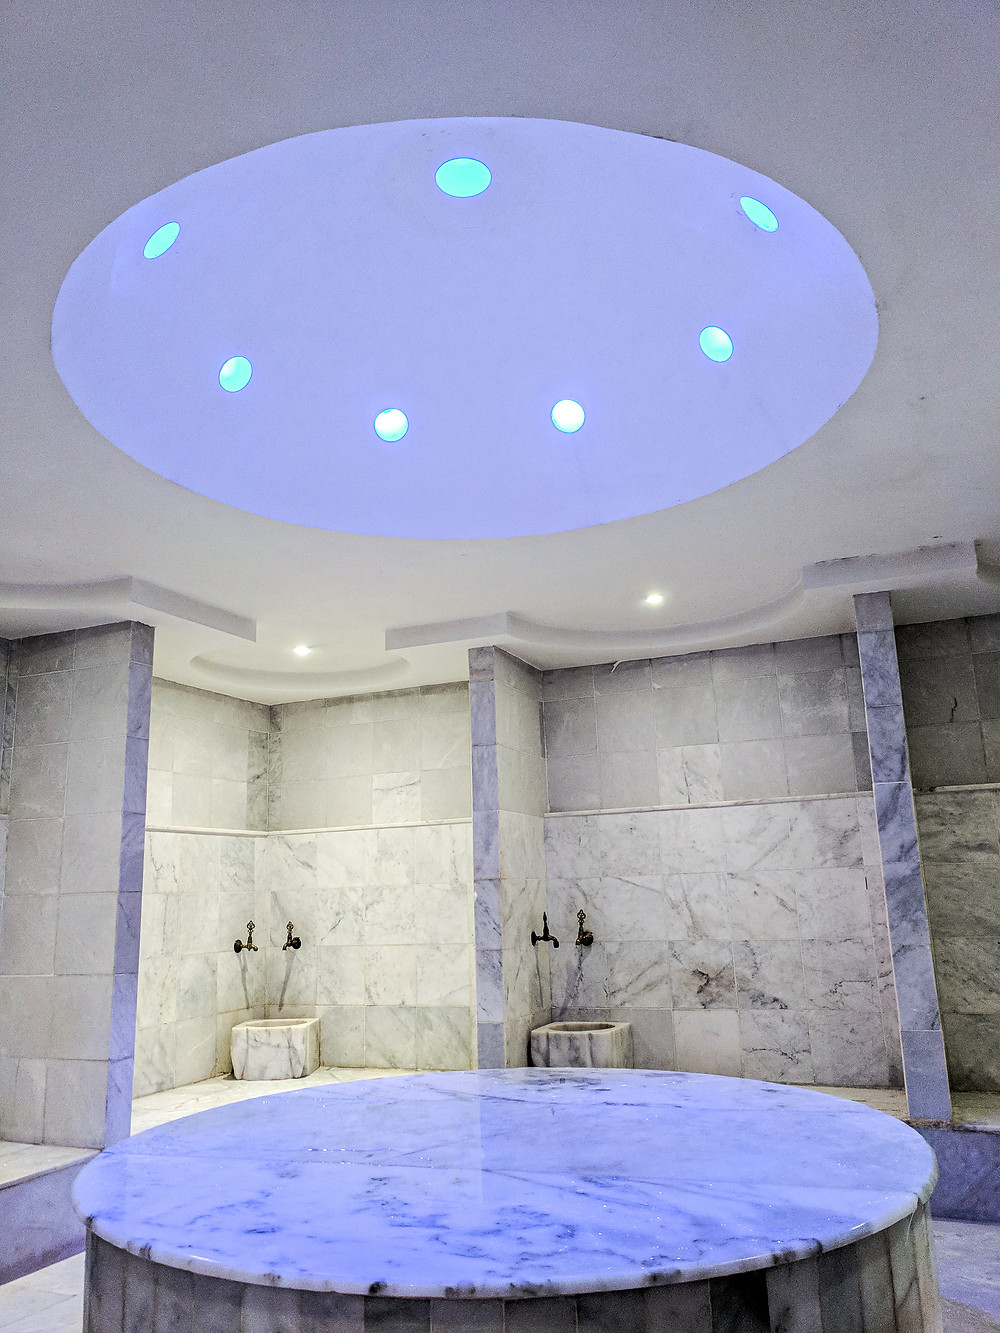 Top things to do in Turkey; experience a Turkish bath.